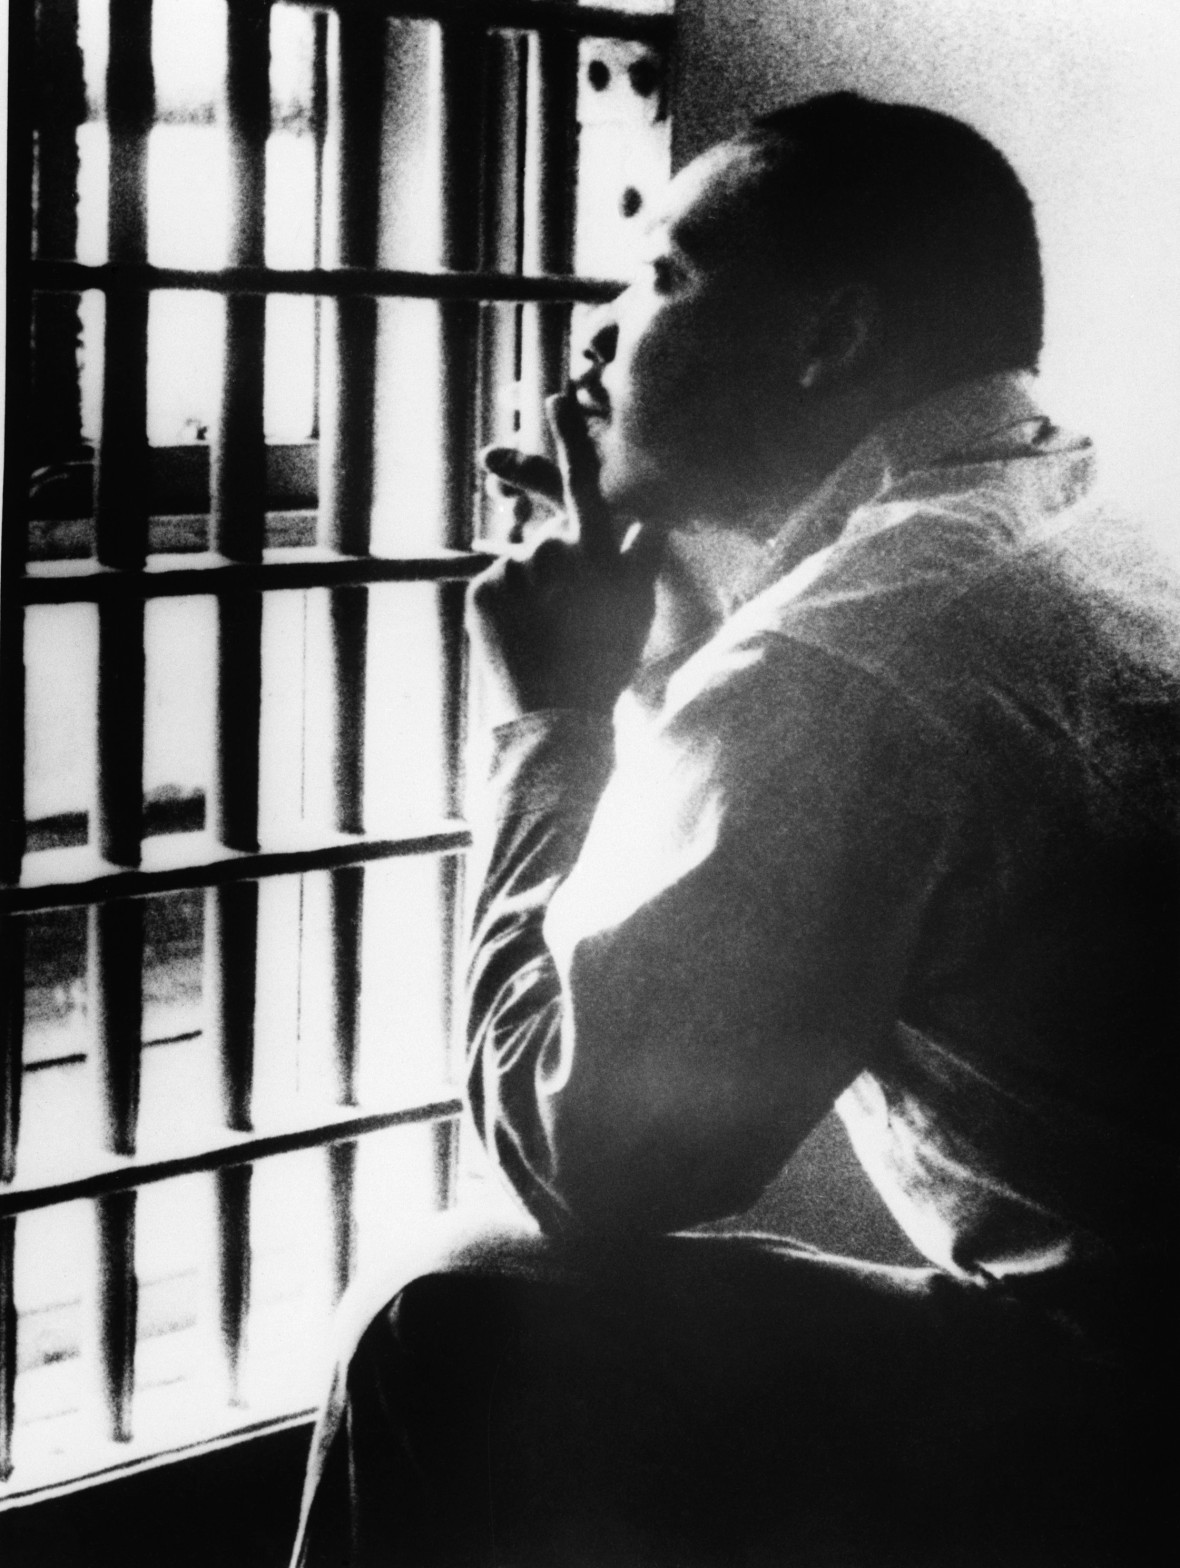 Martin Luther King Jr. in Jail